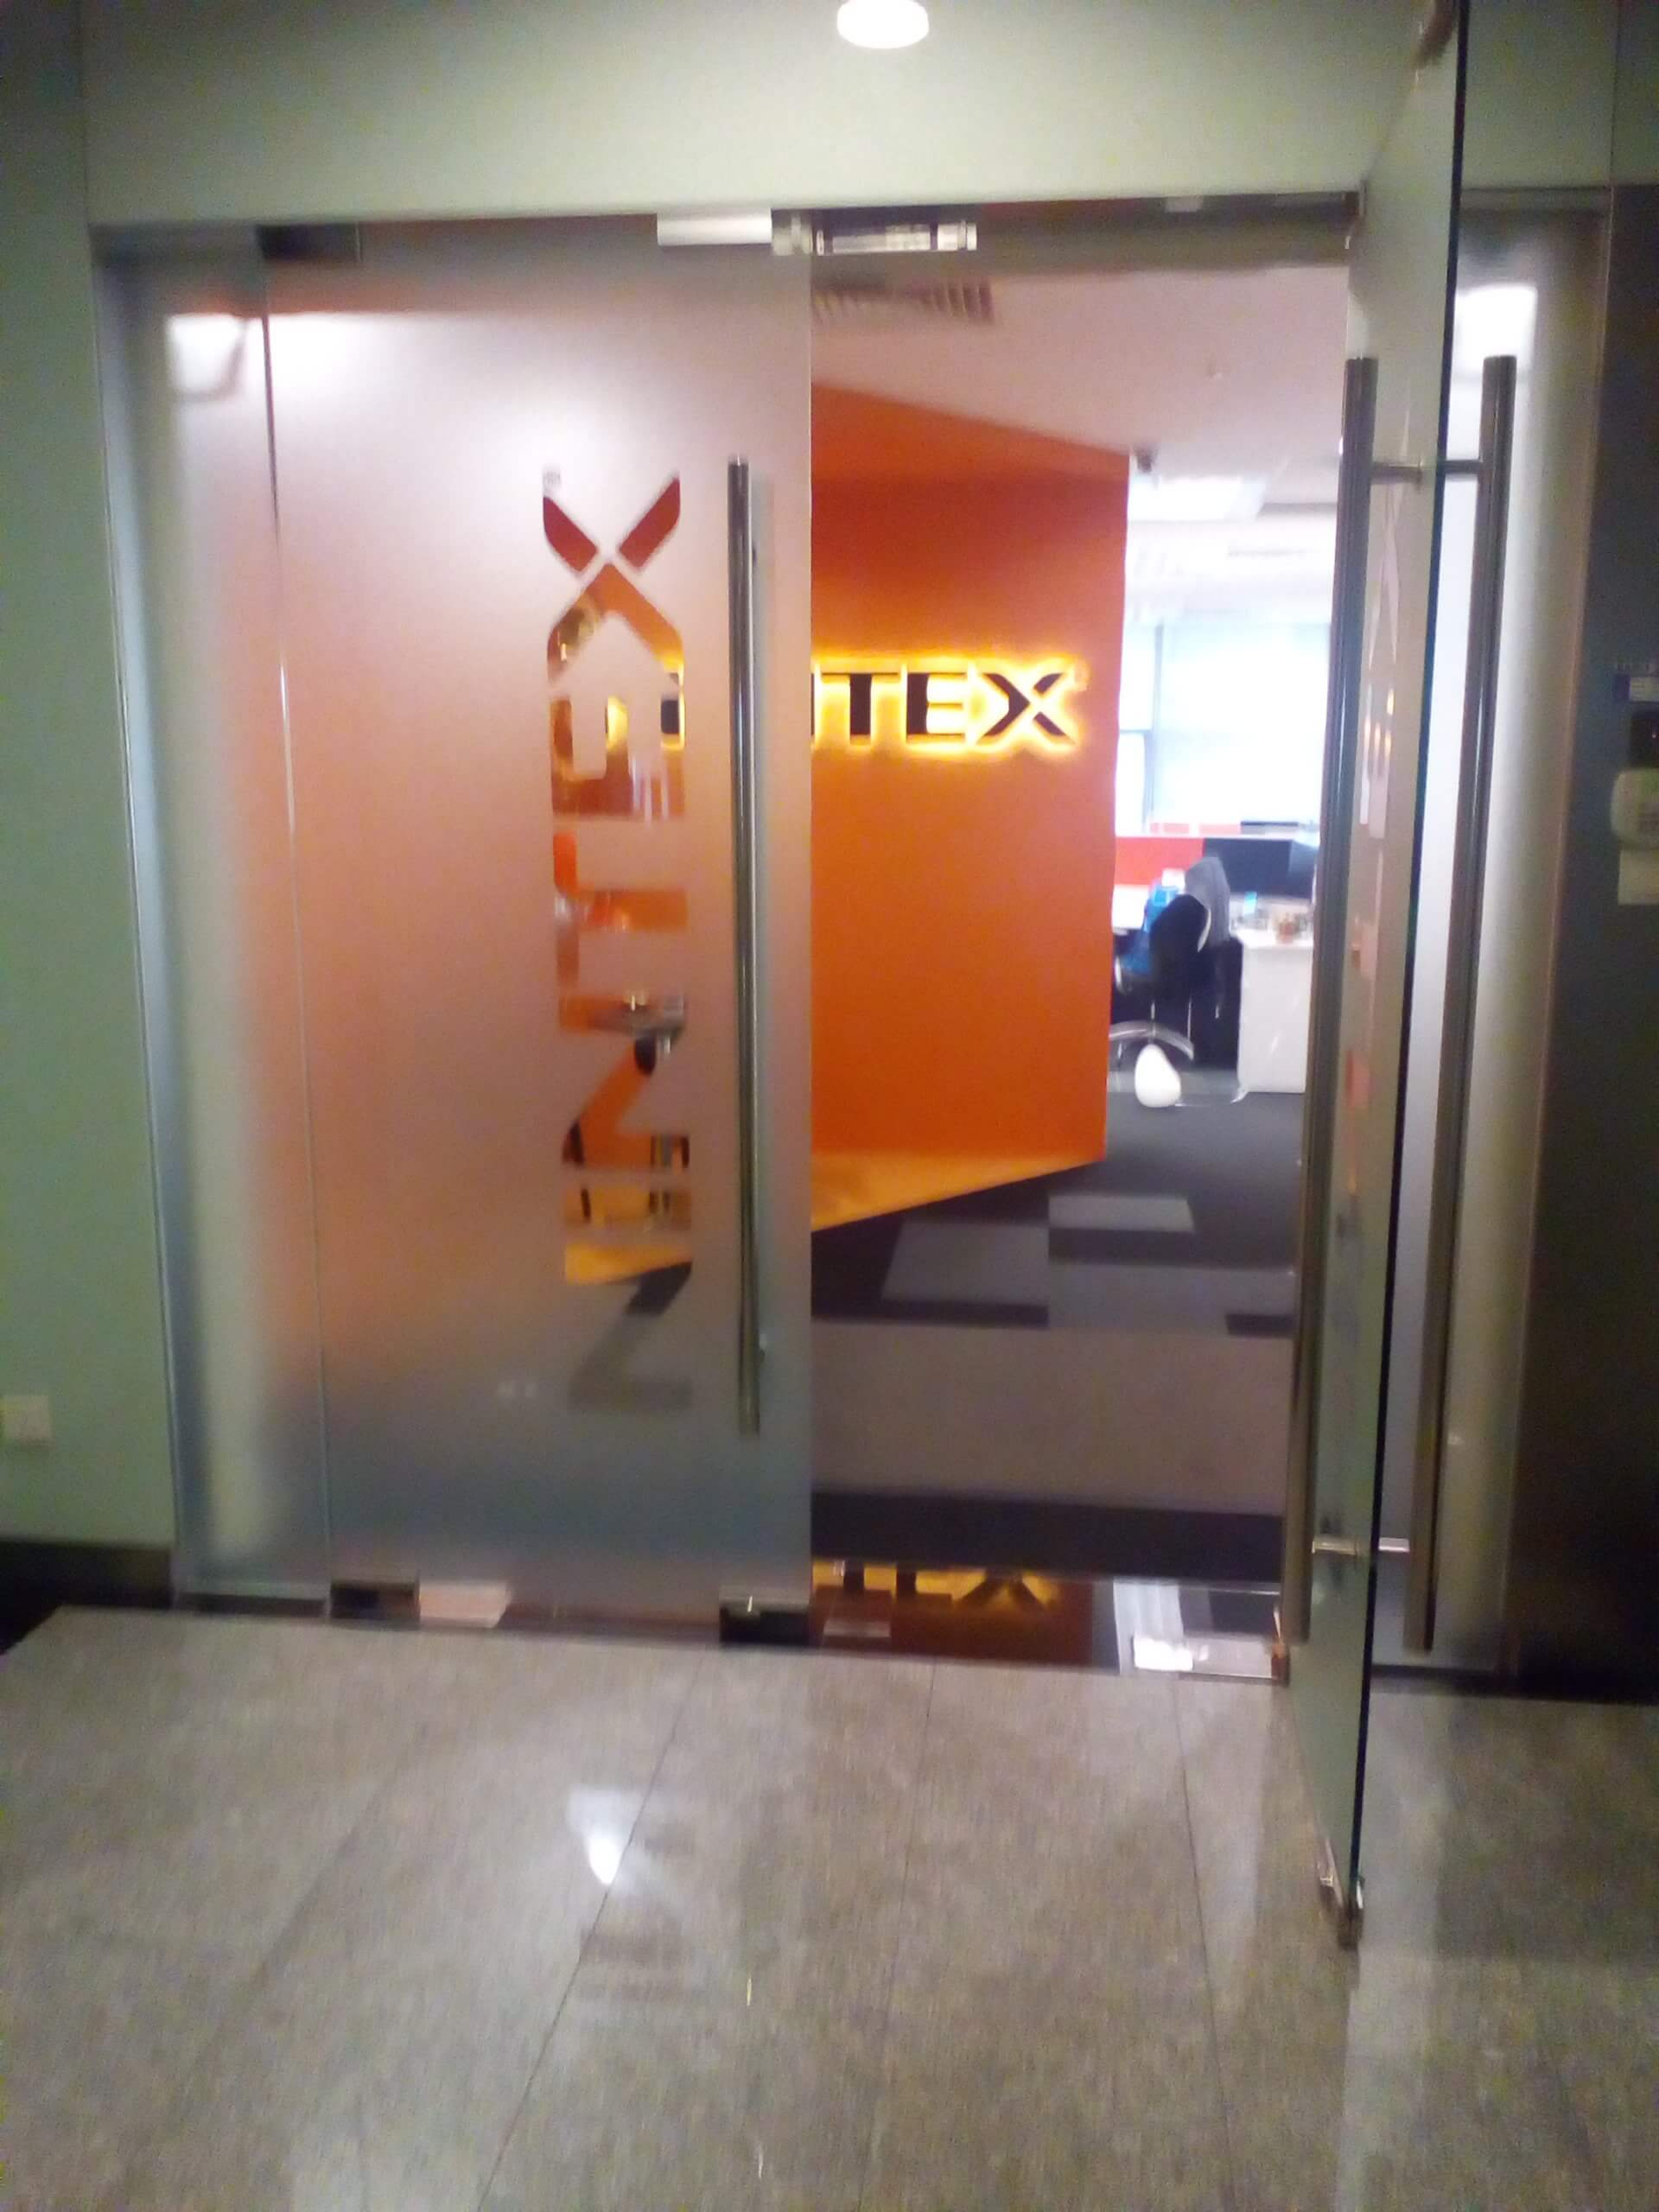 The Nintex Office